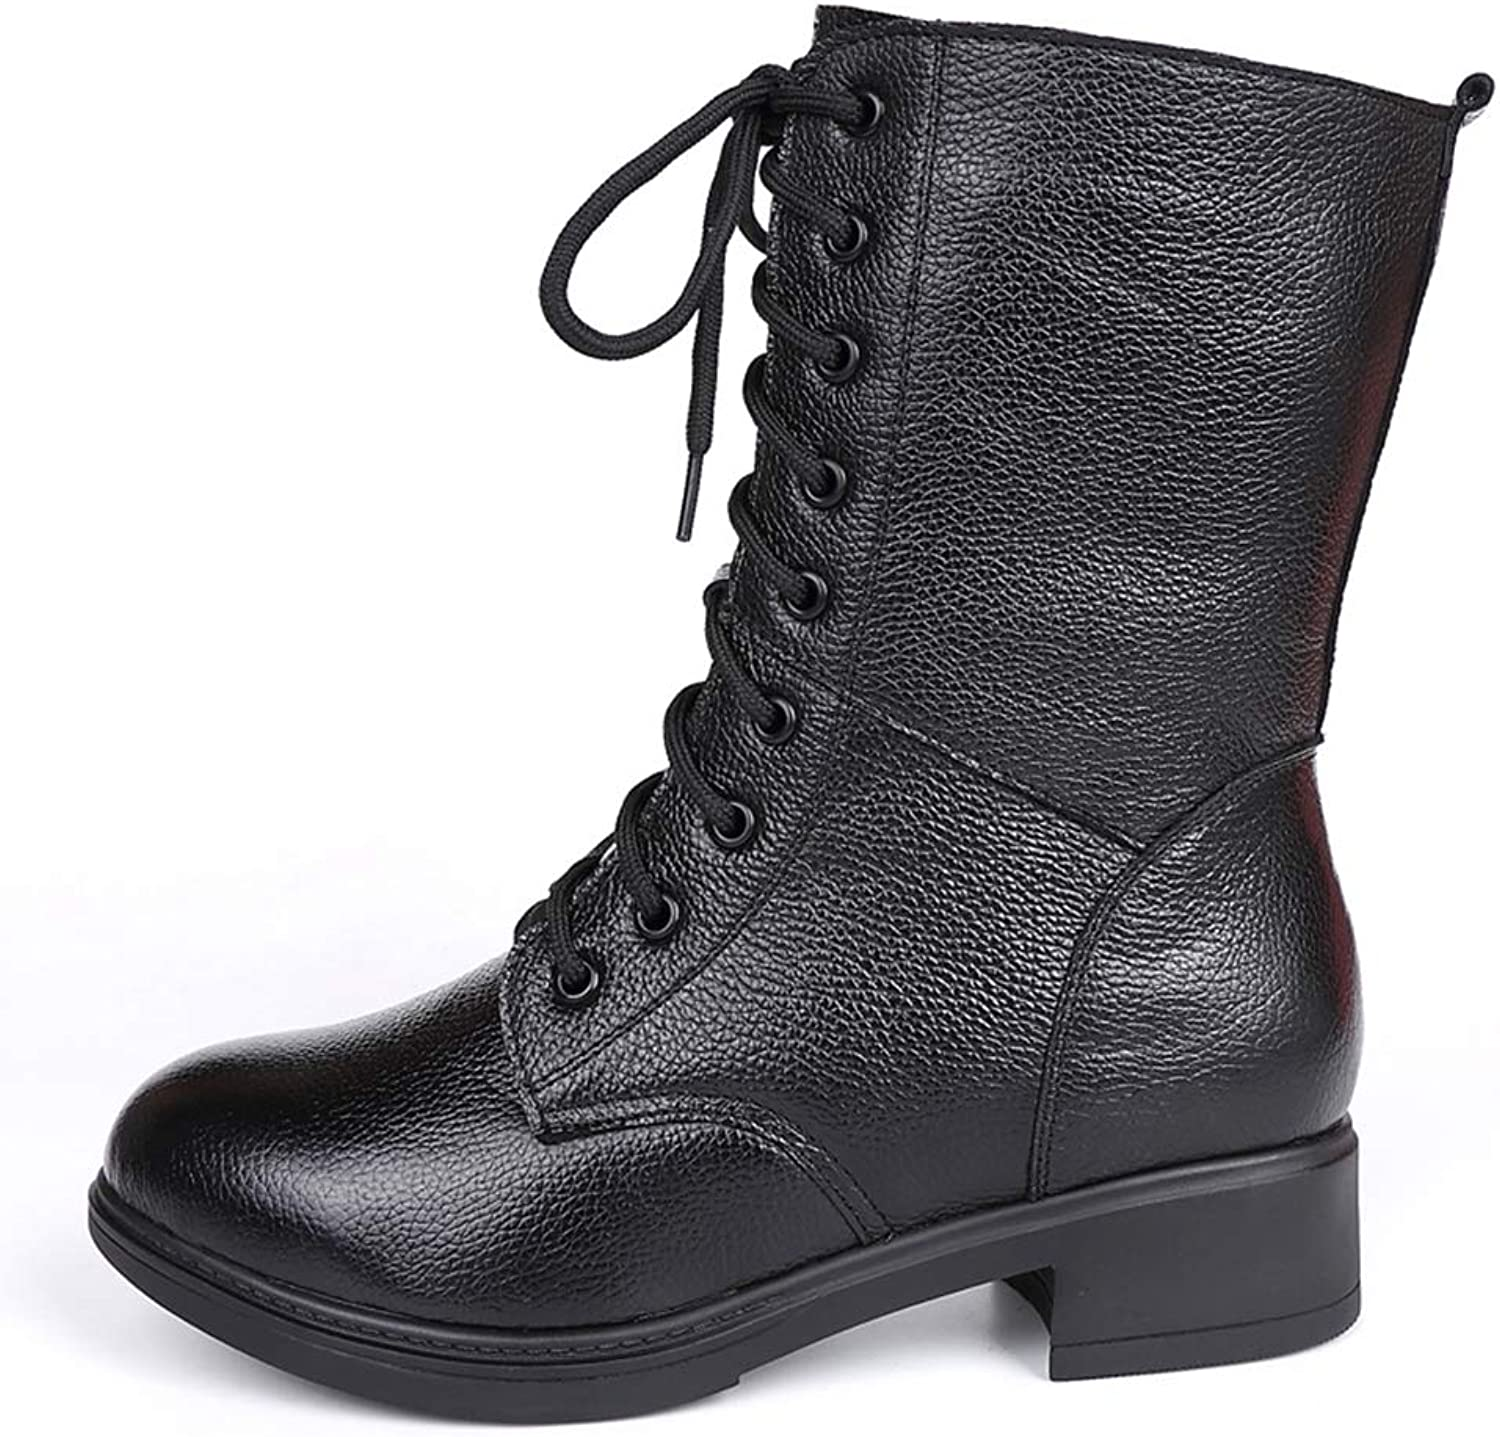 T-JULY Women Martin Motorcycle Boots Round Toe Genuine Leather Winter Mid Calf Boots Black Square Heel Lace up Ladies shoes